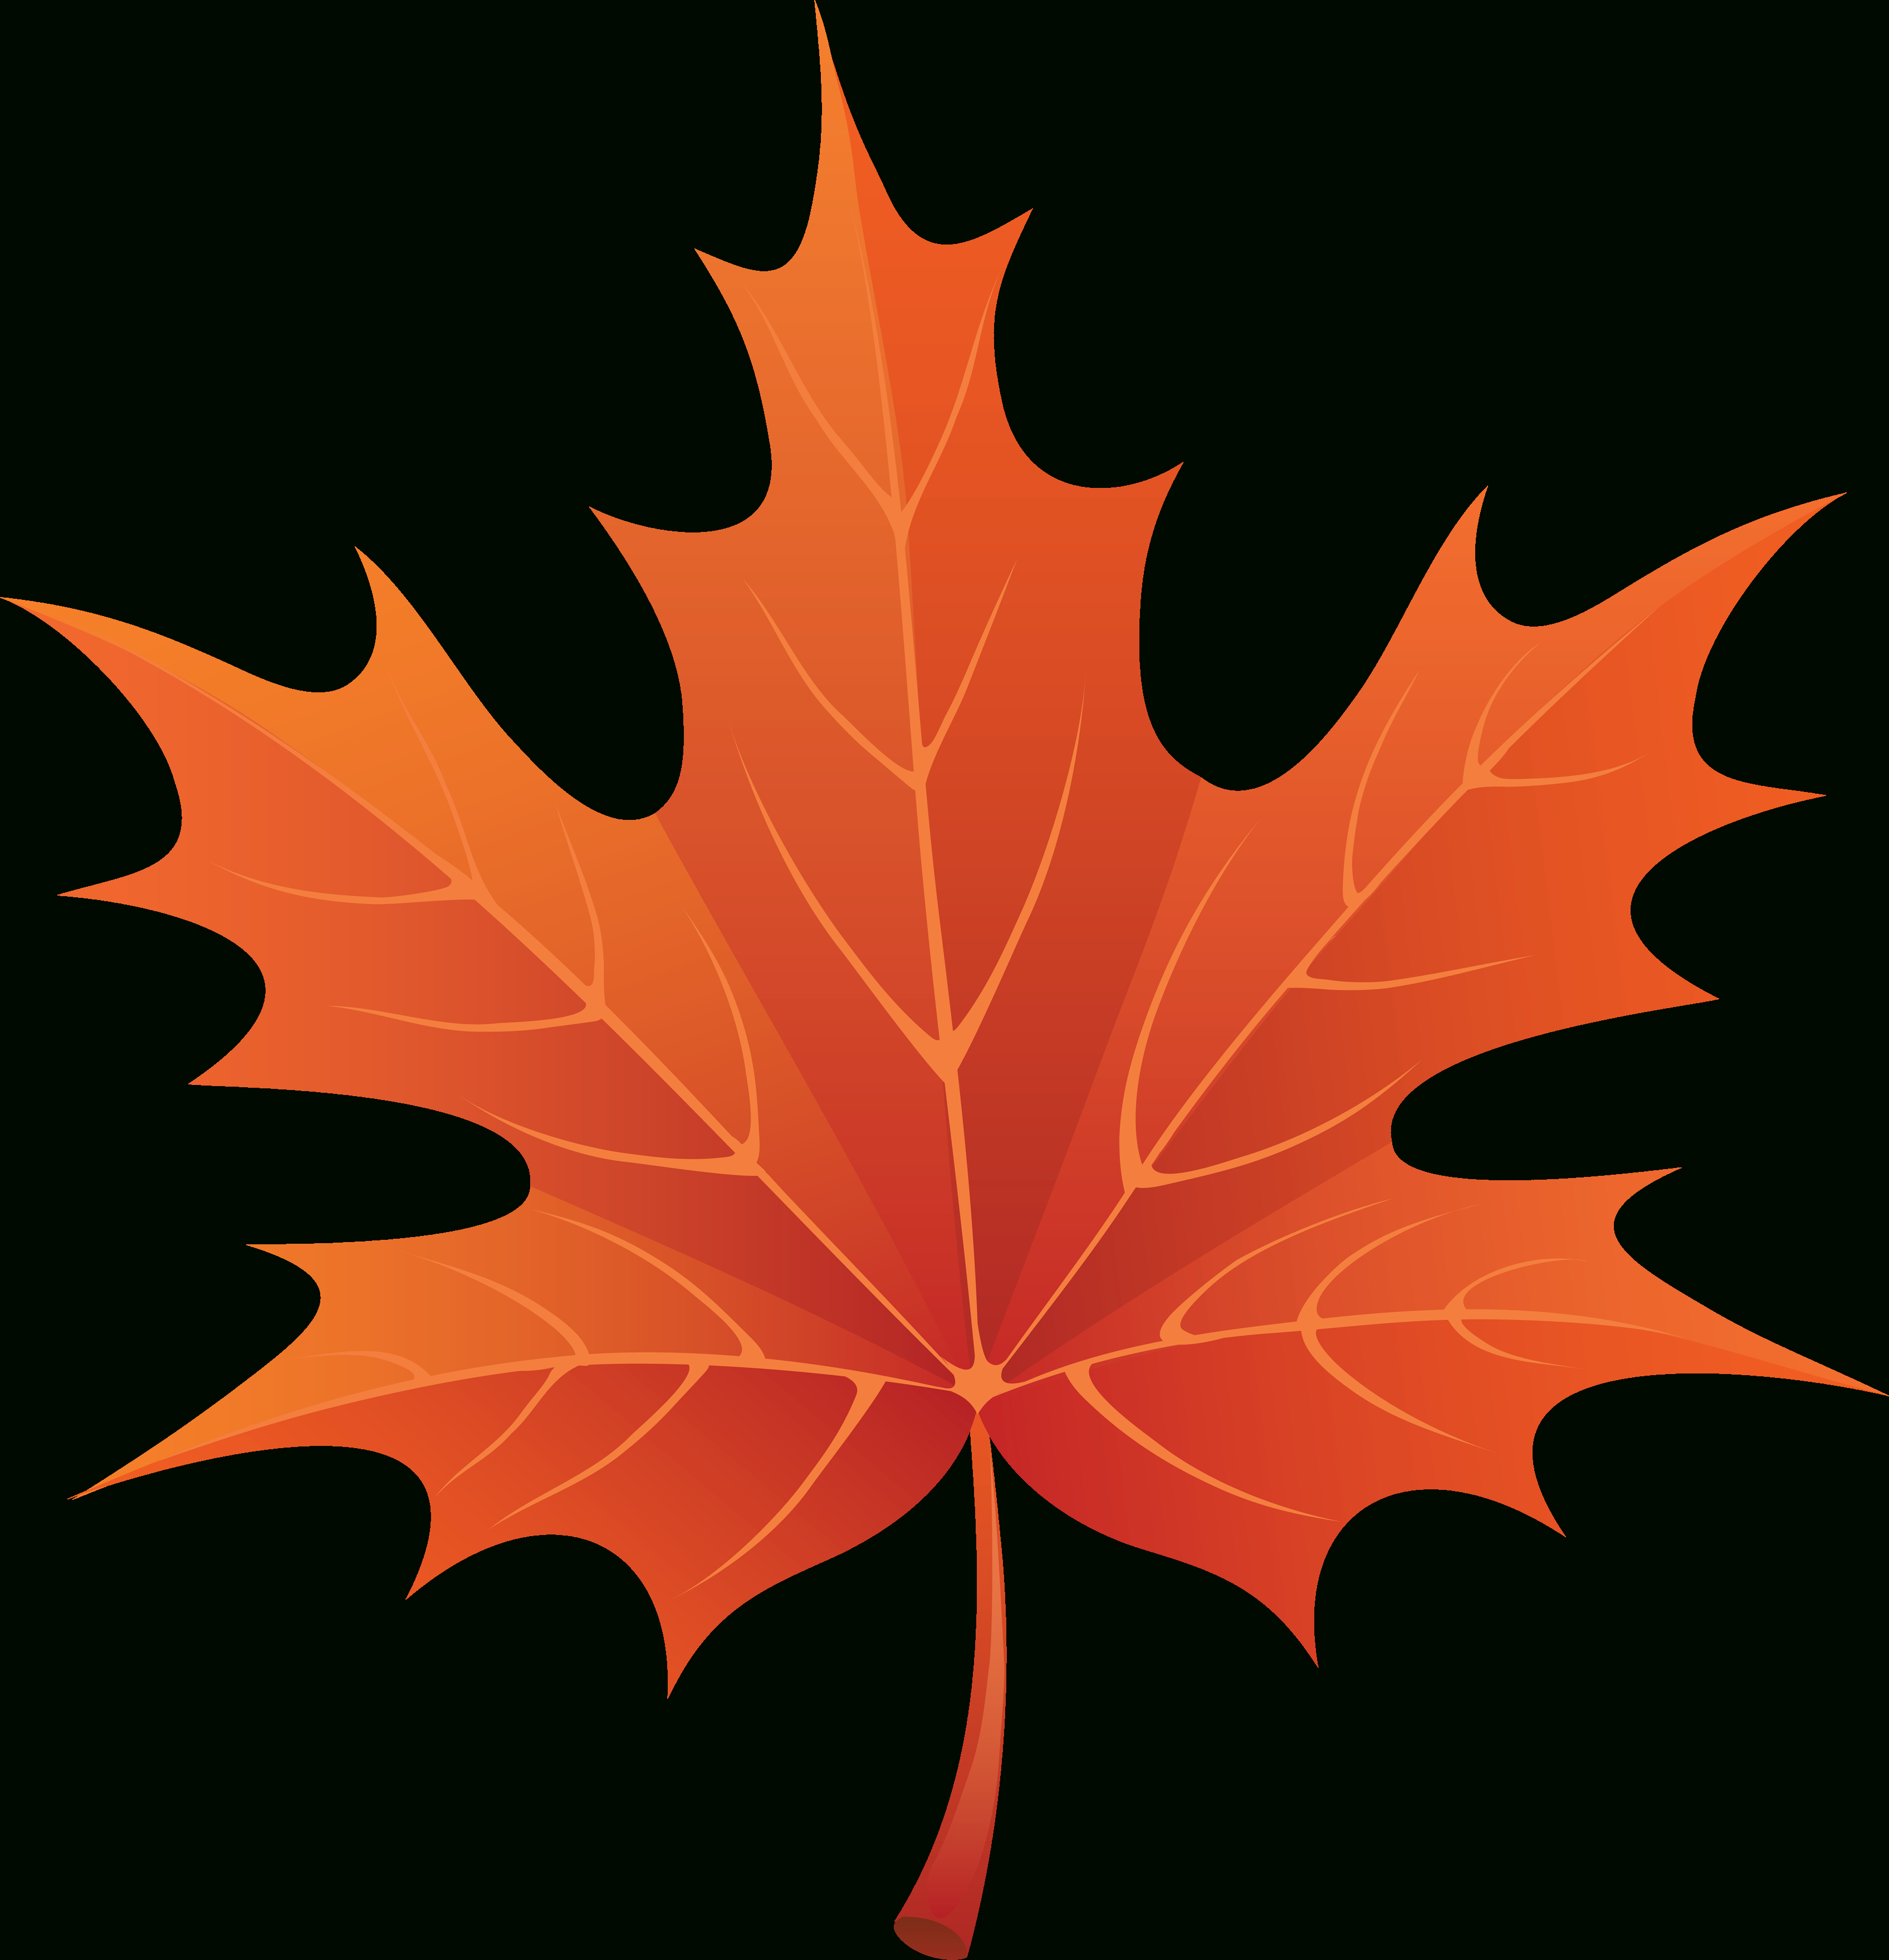 Fall Leaves Autumn Leaves Images Free Yellow Leaves Pictures Clip - Free Printable Pictures Of Autumn Leaves